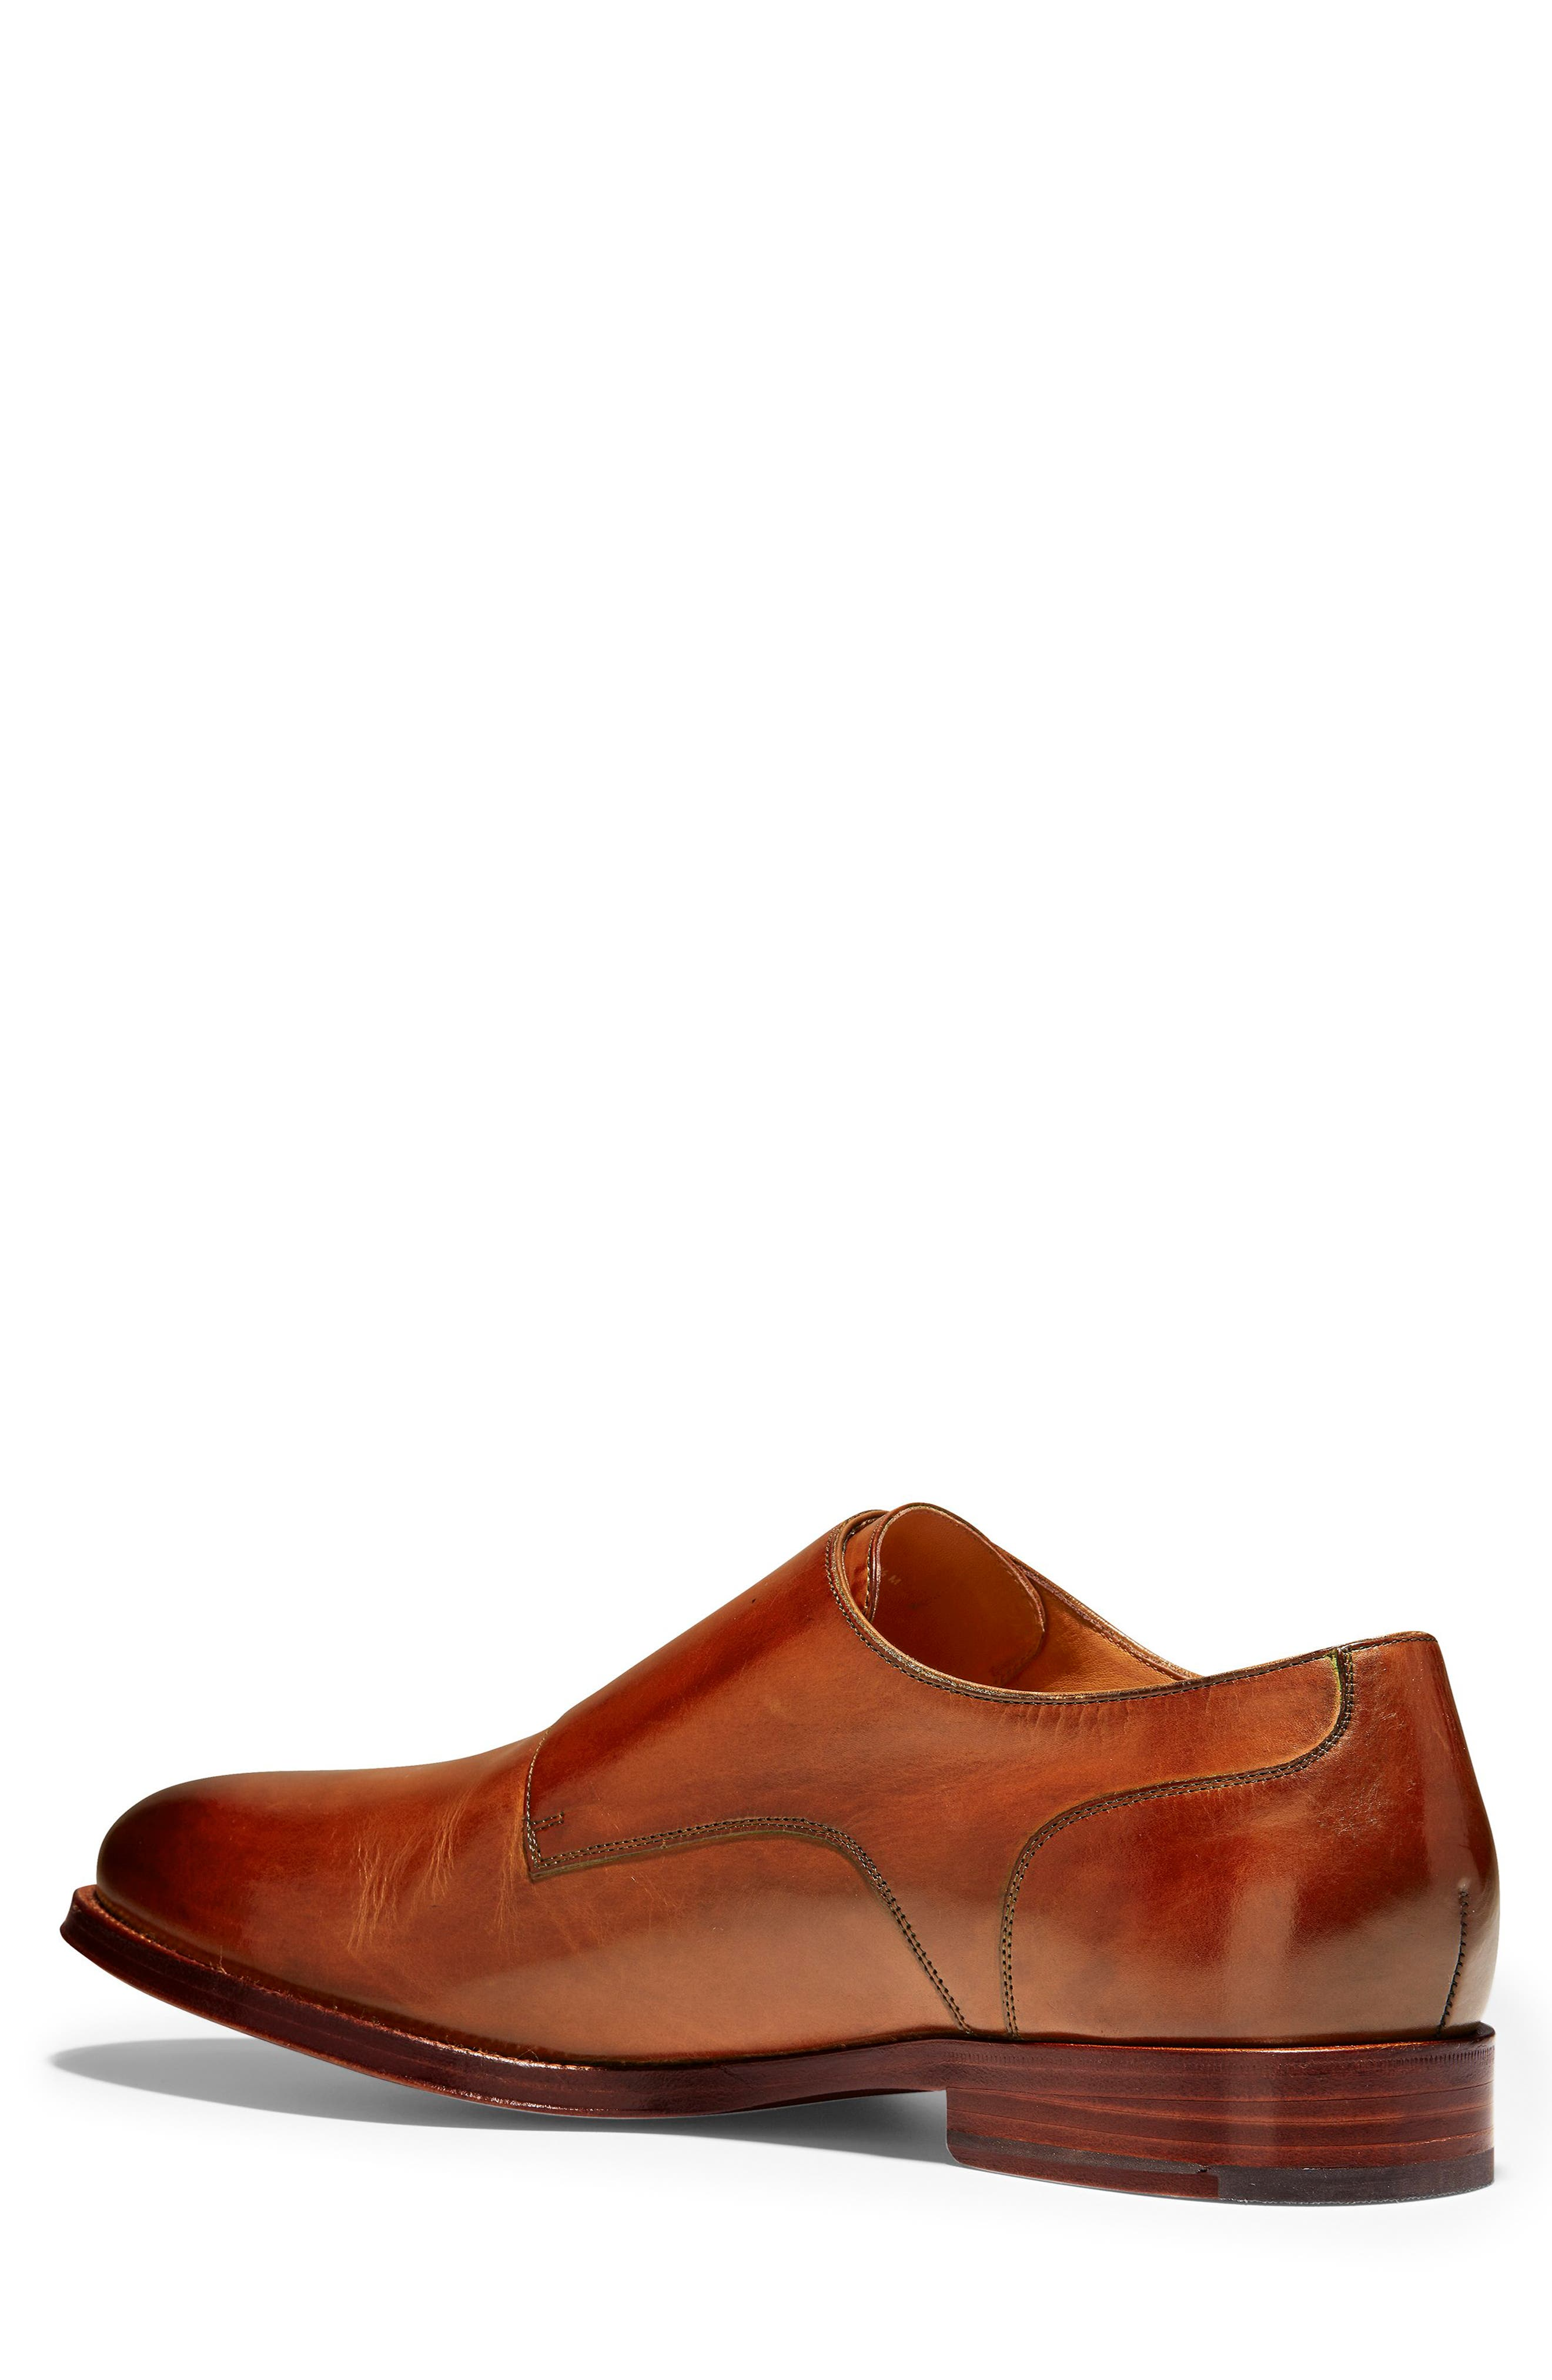 COLE HAAN, American Classics Gramercy Double Strap Monk Shoe, Alternate thumbnail 2, color, BRITISH TAN LEATHER